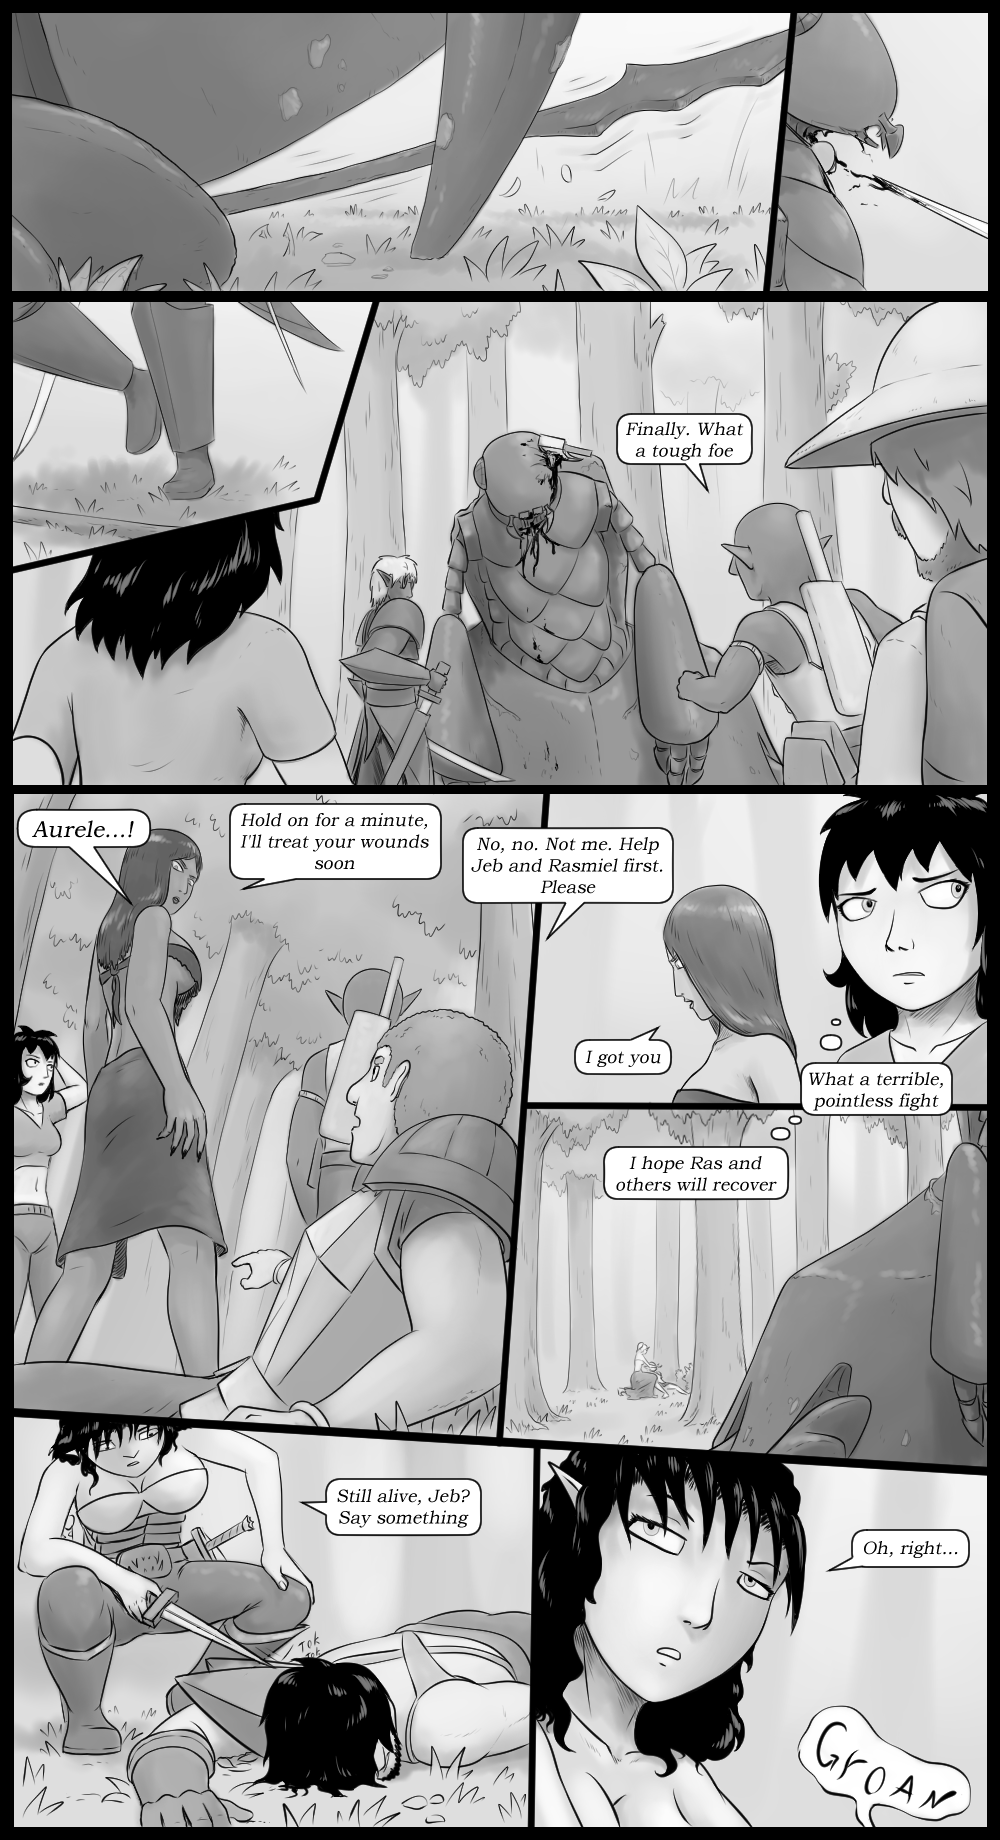 Page 105 - the End of the Fight